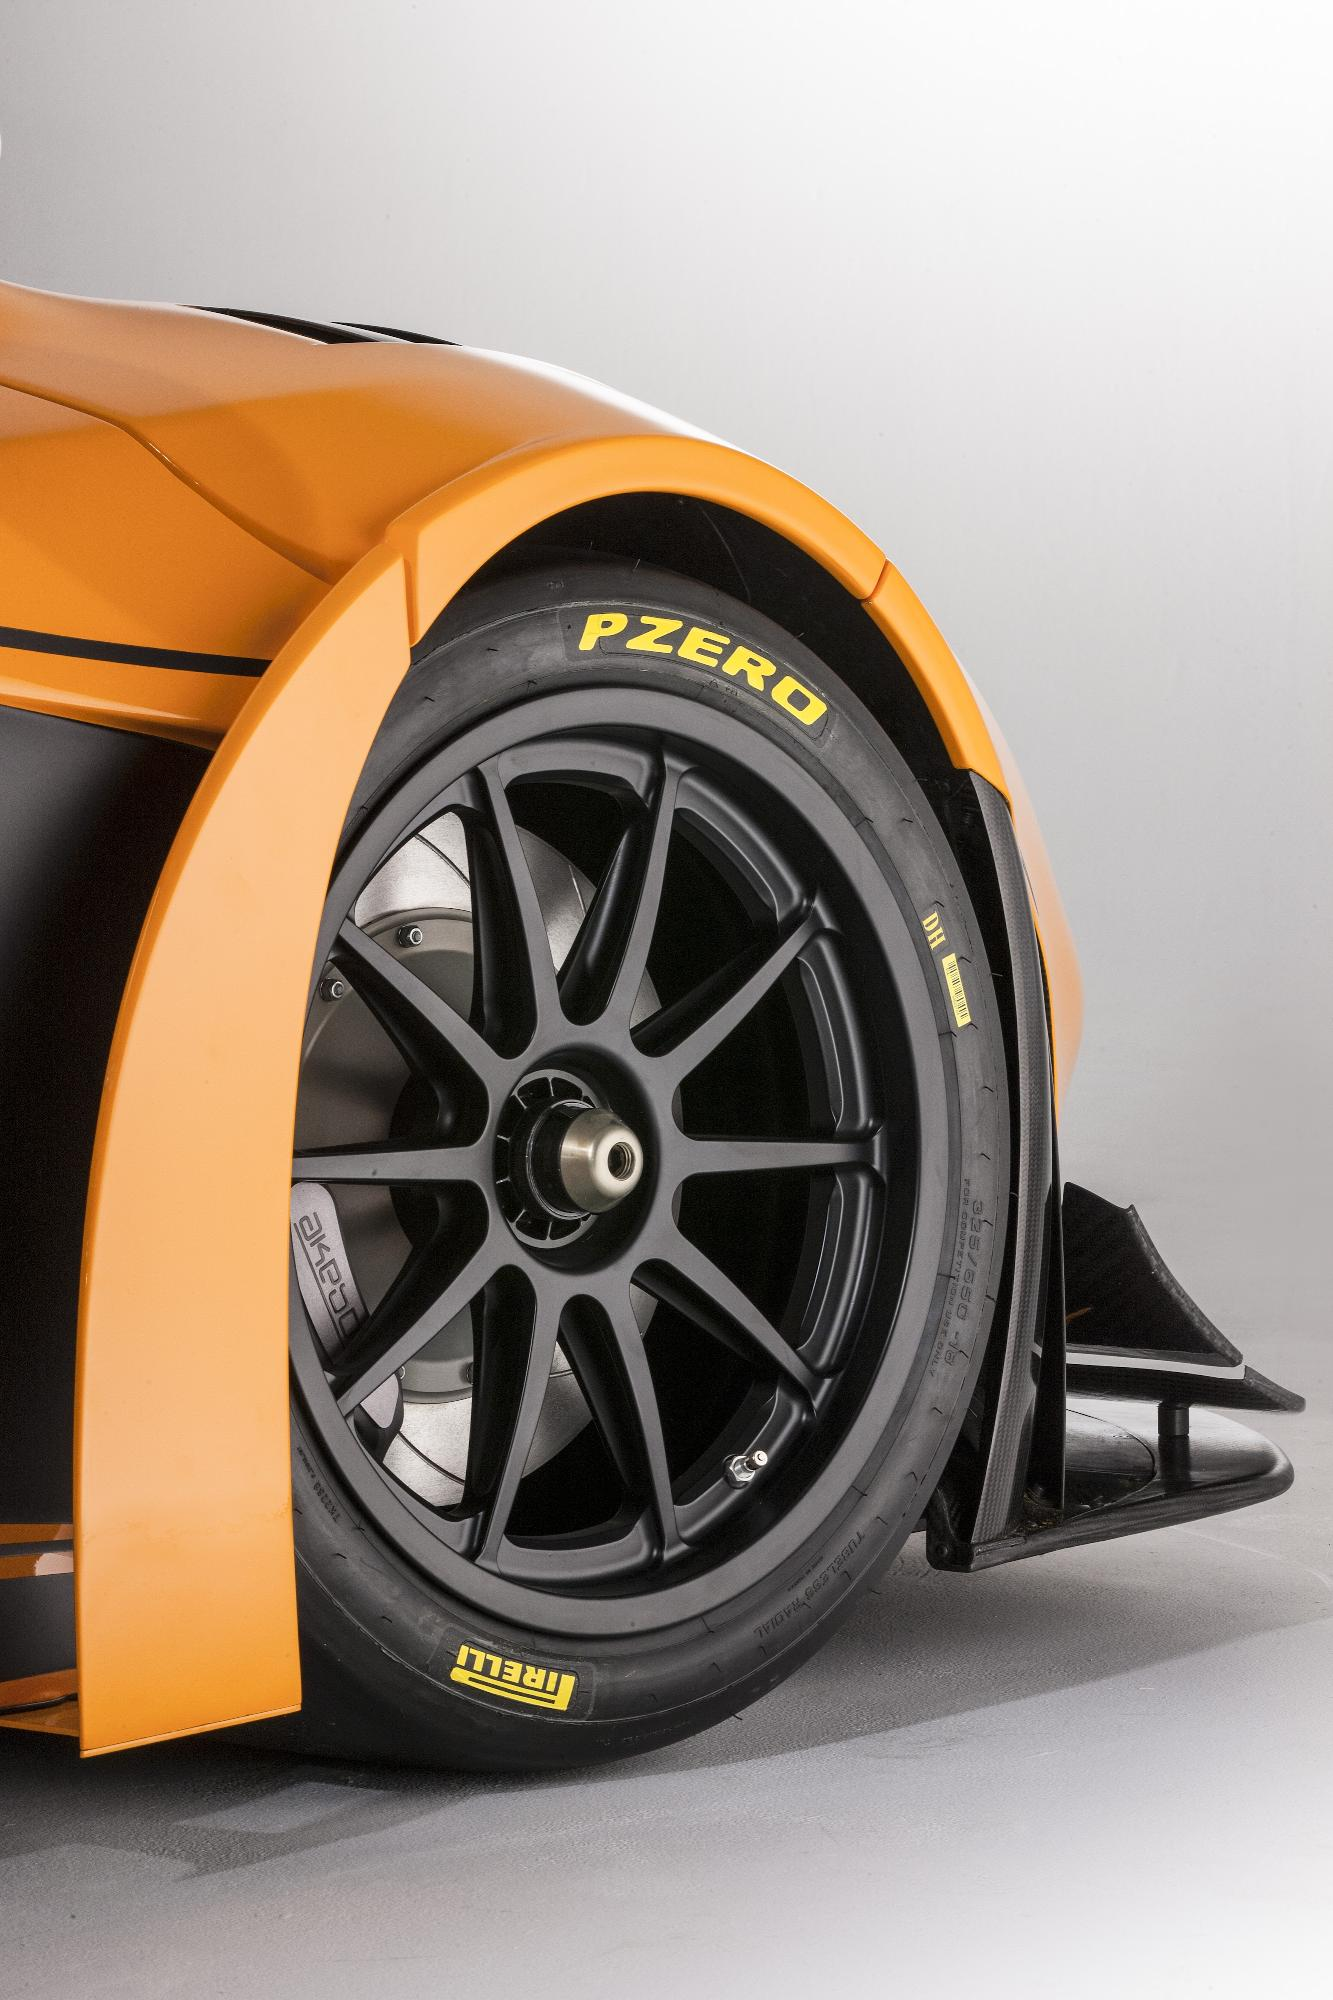 https://www.automobilesreview.com/gallery/mclaren-12c-can-am-edition-racing-concept/mclaren-12c-can-am-edition-racing-concept-12.jpg